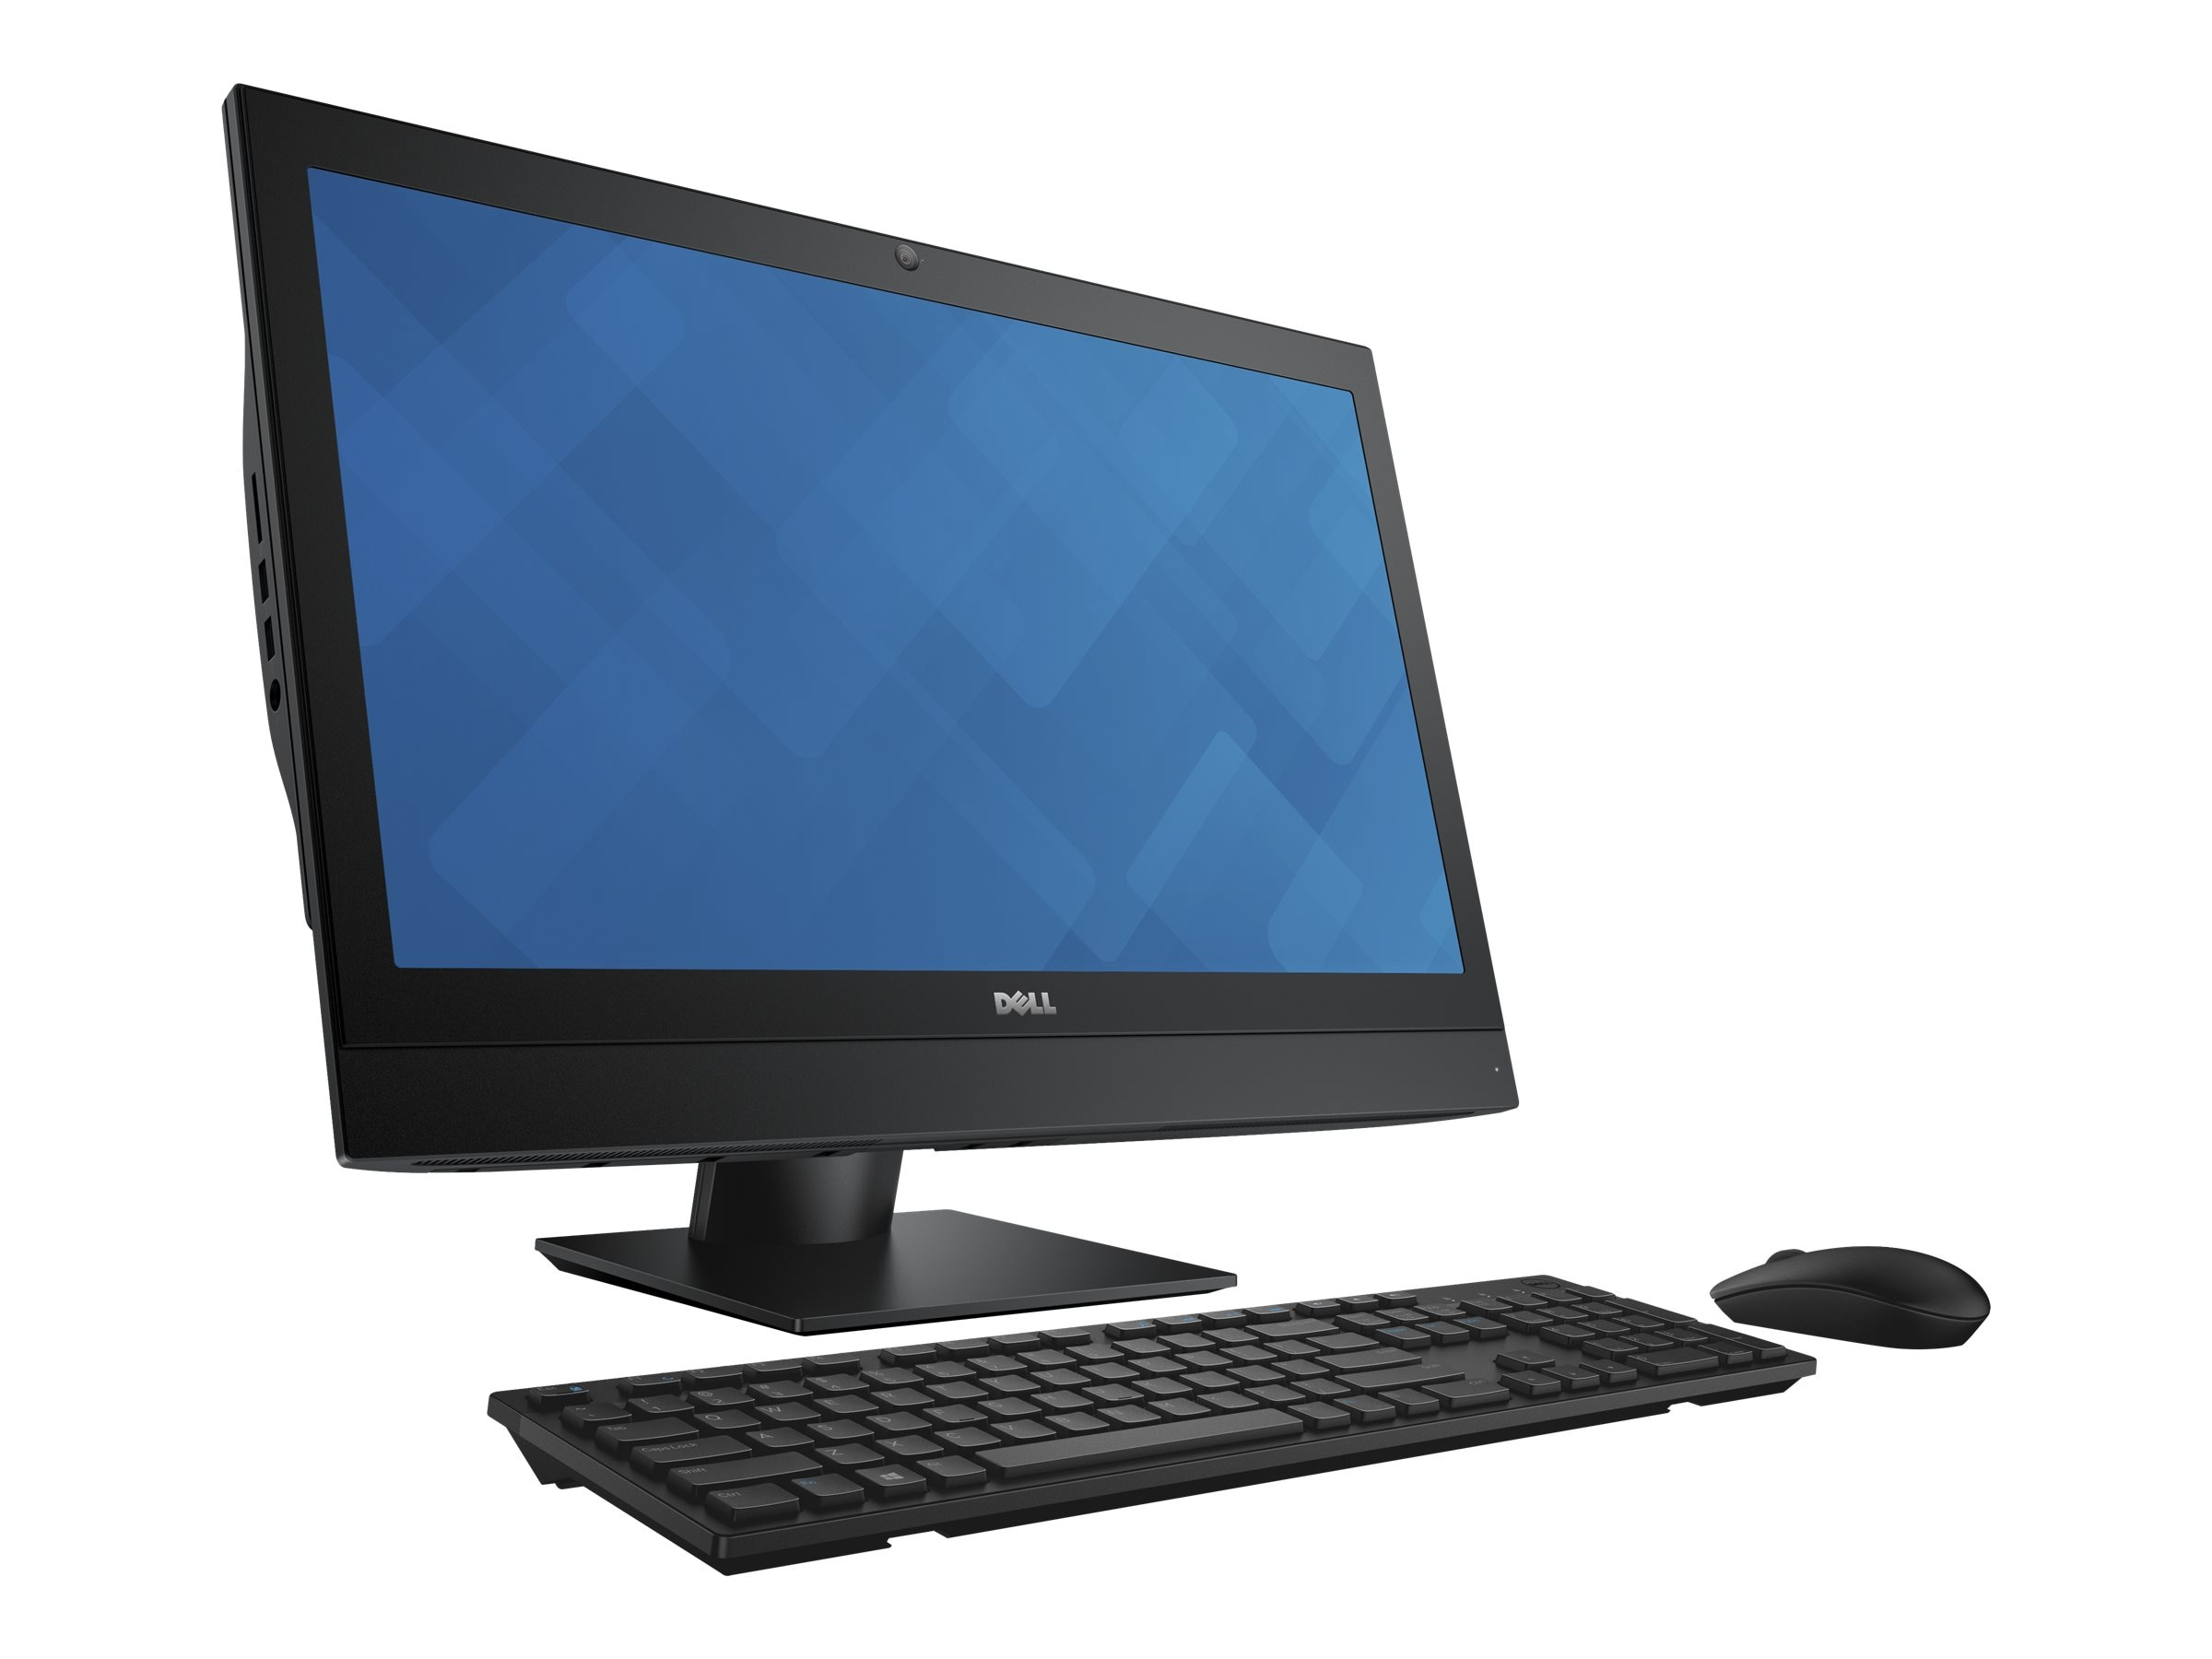 Dell OptiPlex 7440 AIO Core i7-6700 3.4GHz 8GB 500GB DVD+RW GbE ac BT 23 FHD W7P64-W10P, MWXTN